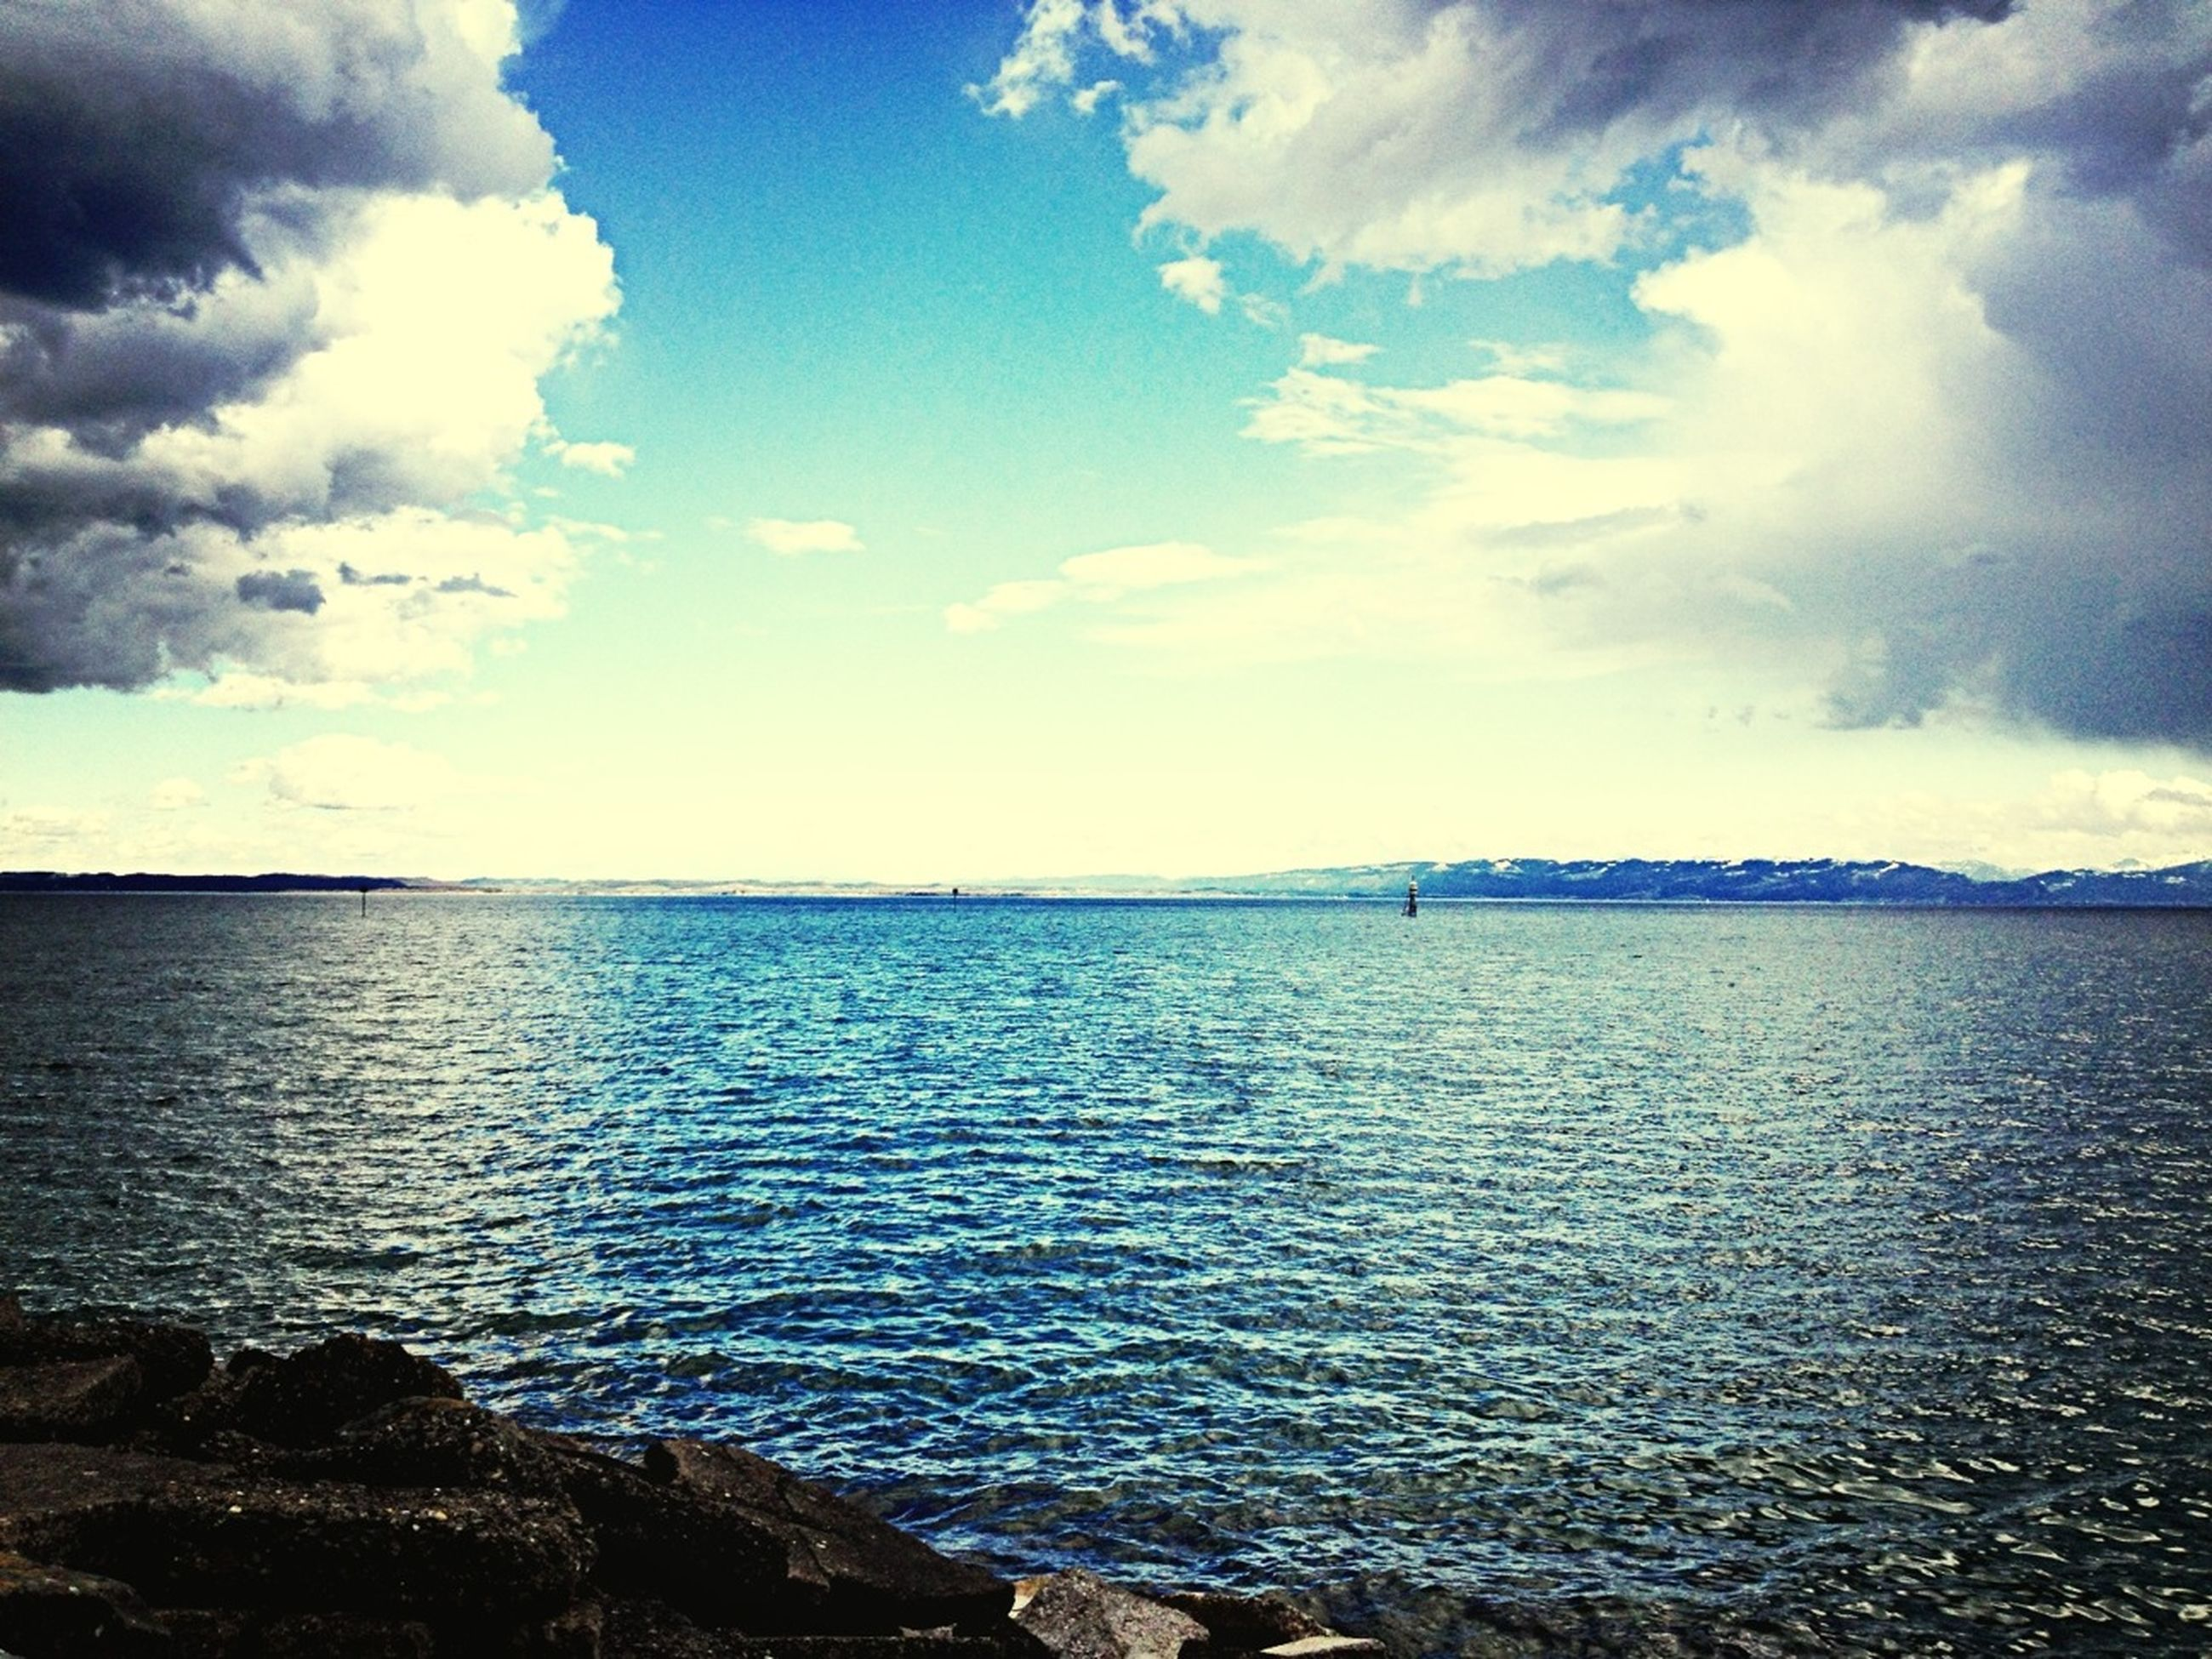 water, sea, sky, tranquil scene, scenics, tranquility, horizon over water, cloud - sky, beauty in nature, nature, cloud, rippled, idyllic, cloudy, blue, waterfront, seascape, beach, calm, outdoors